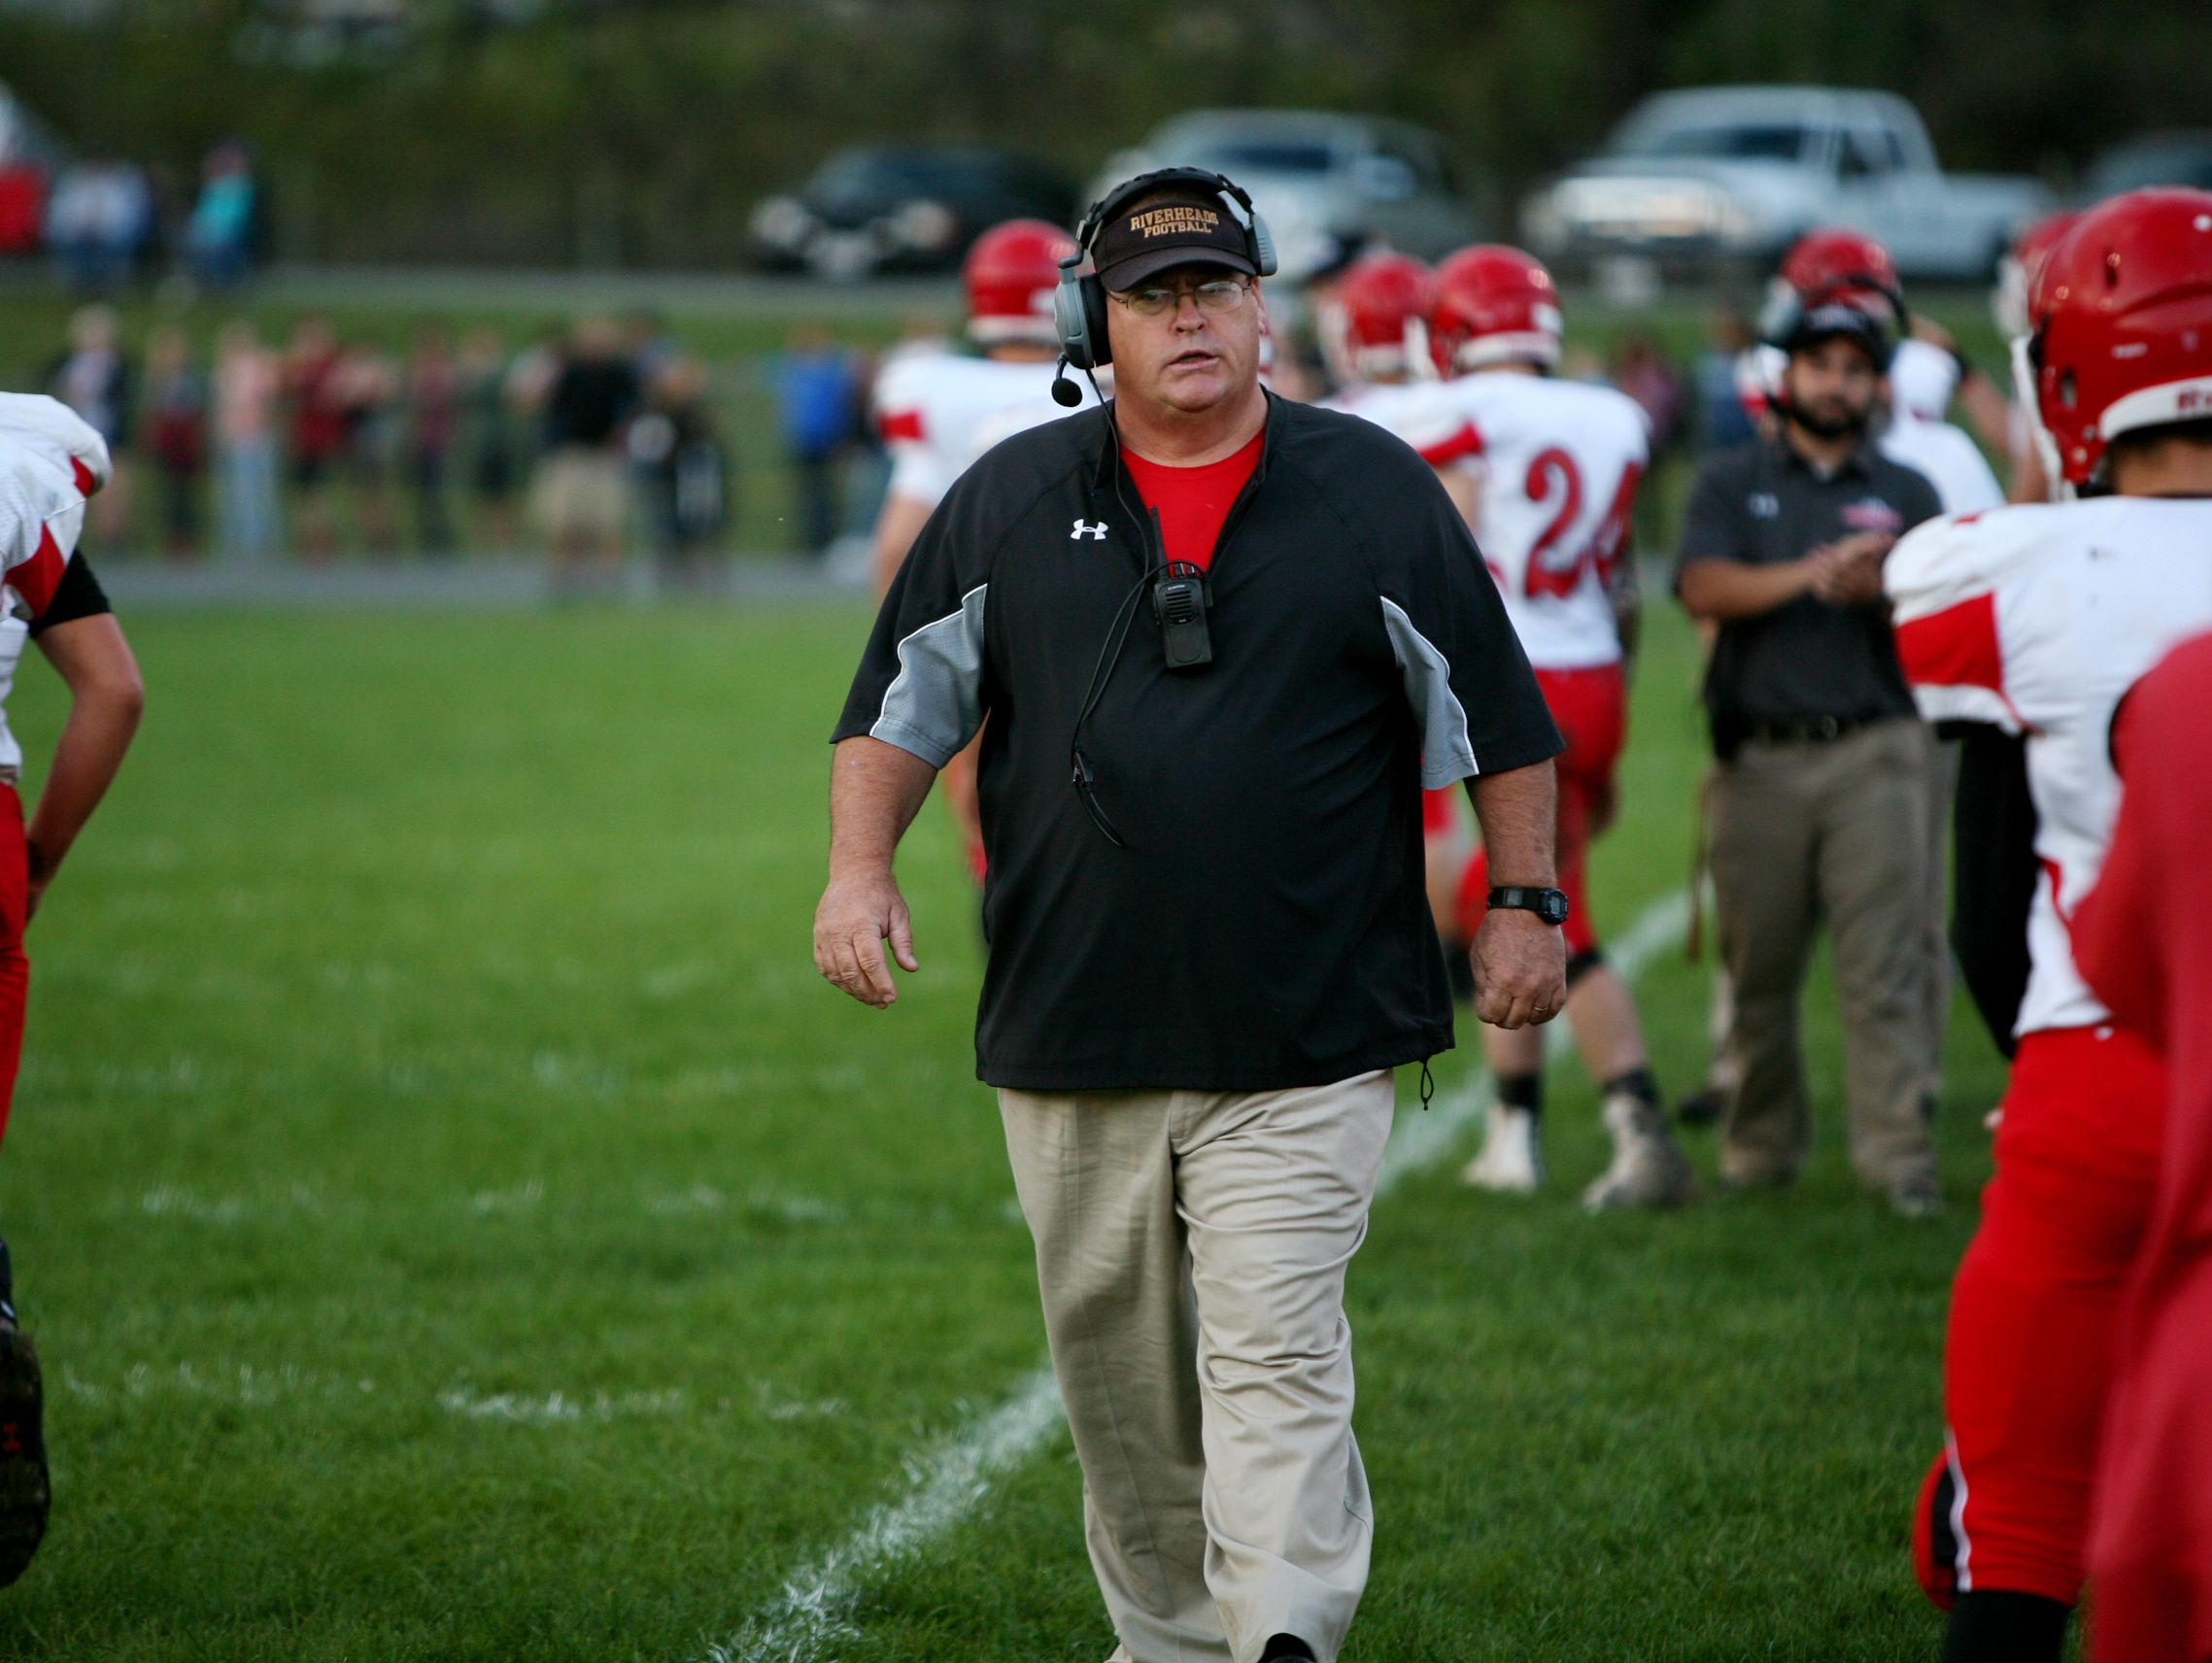 Riverhead's head coach Robert Casto during the game at Buffalo Gap on Saturday, Oct. 1, 2016.